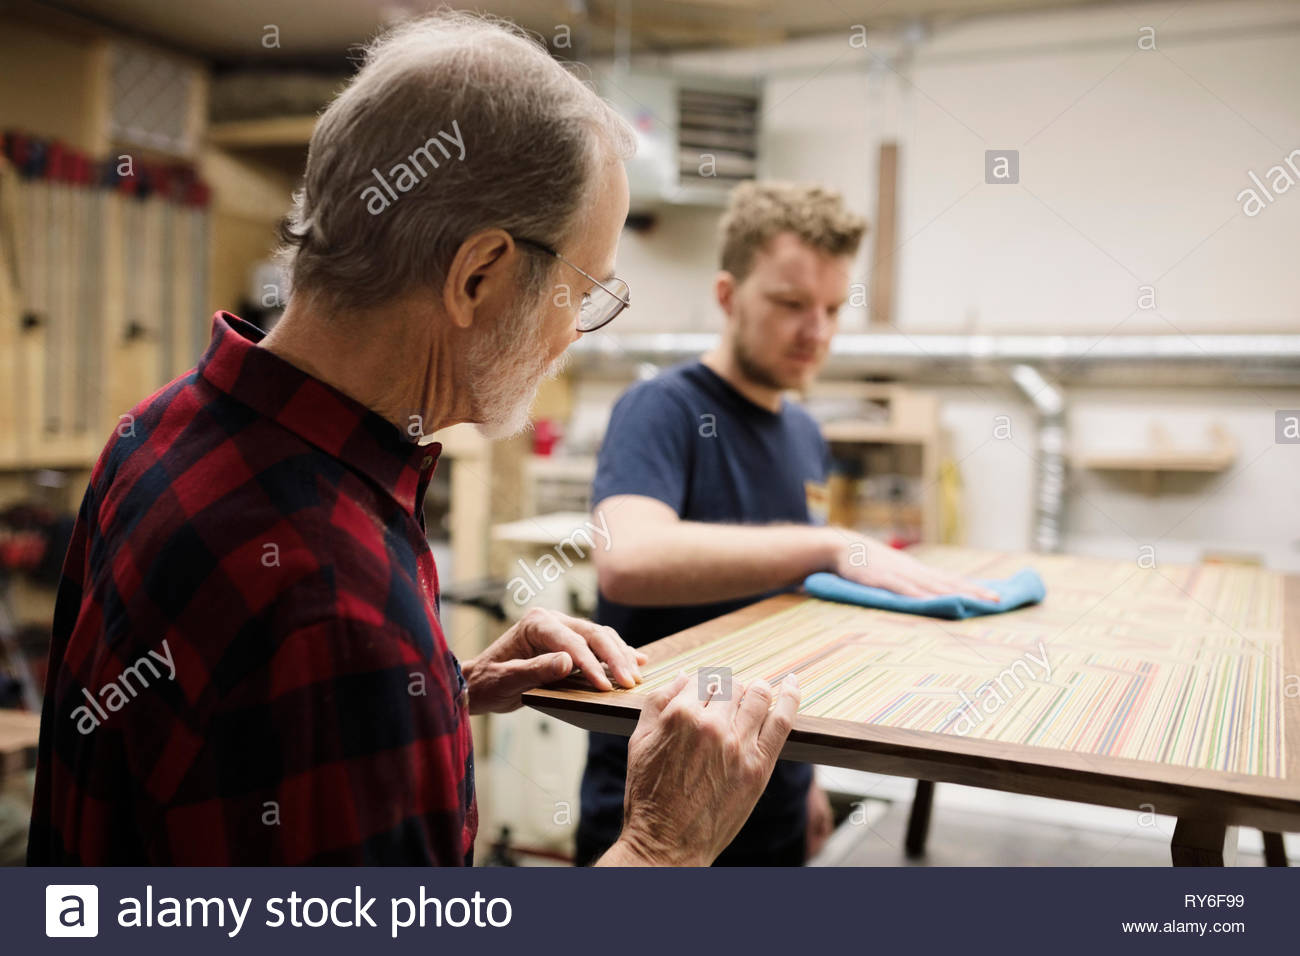 Father and son carpenters finishing table in workshop - Stock Image